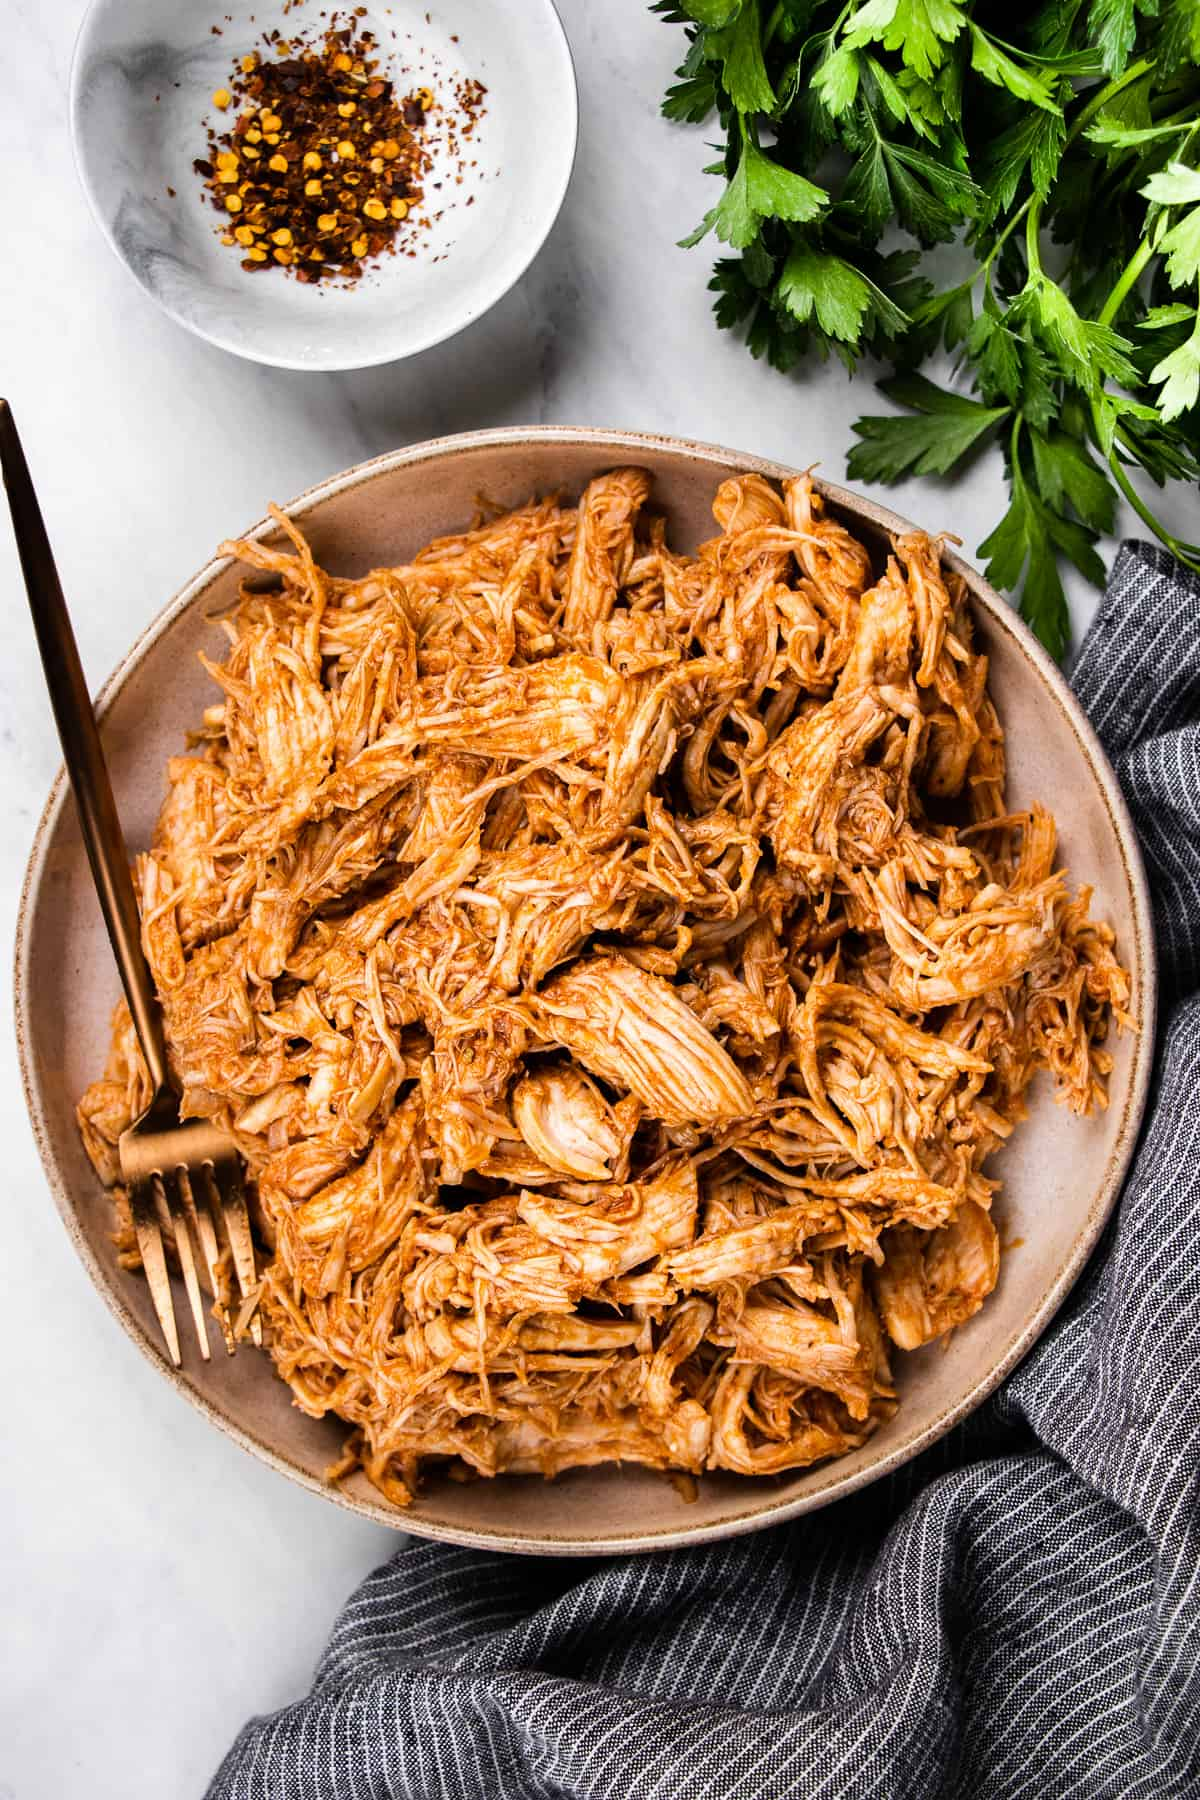 Pulled chicken in a bowl with a fork.